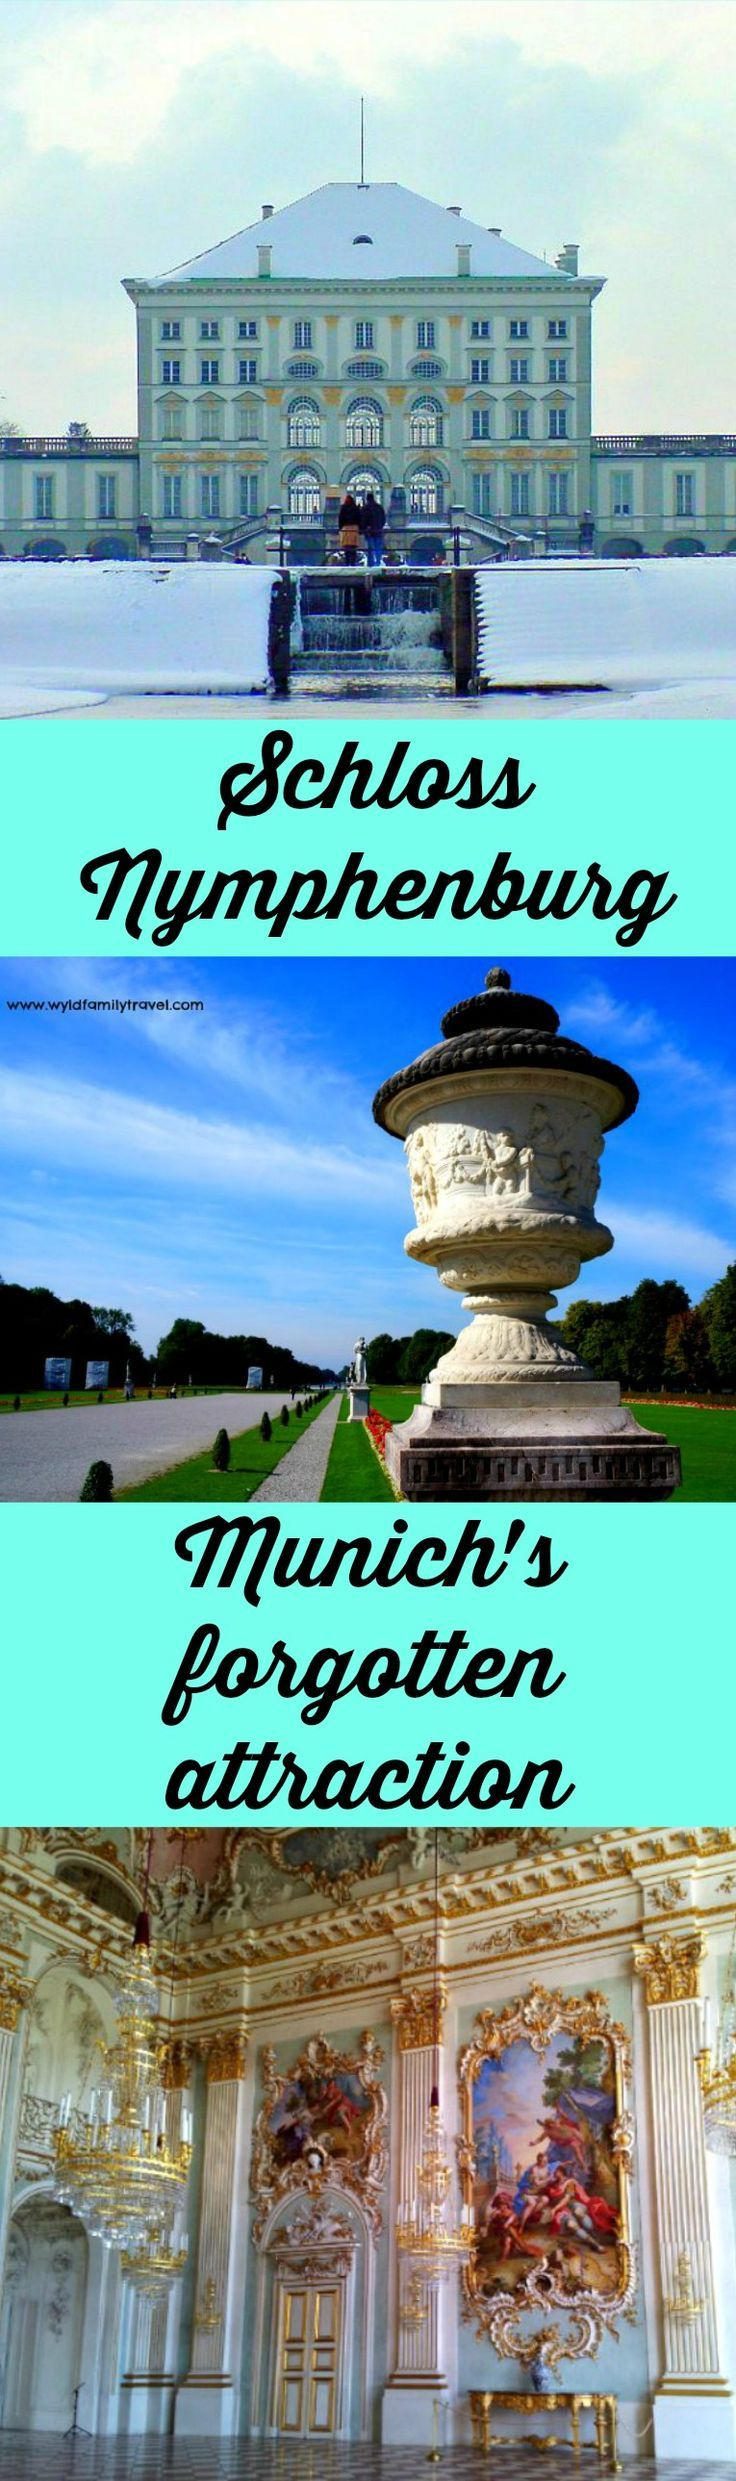 Nyphenburg Palace, one of the hidden gems of Munich, Germany.